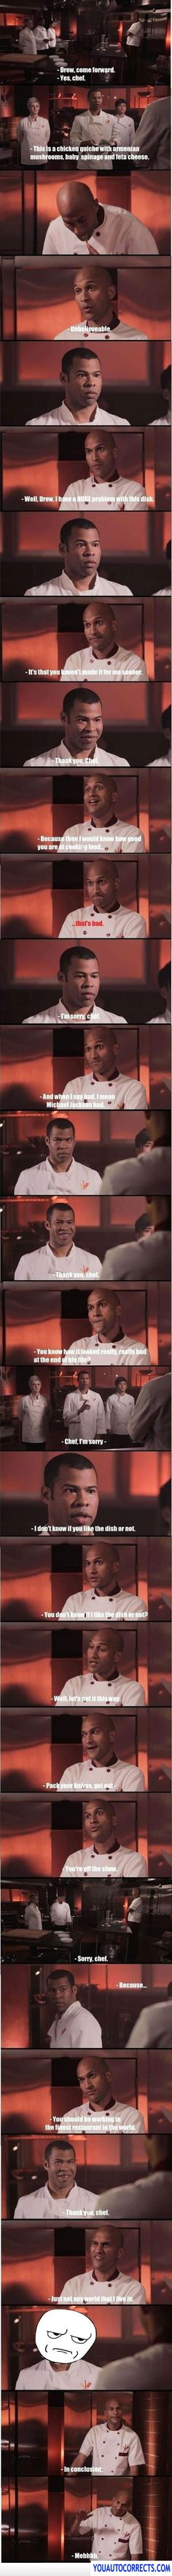 Masterchef key and peele HAHAHAHAHAHA they are geniuses.